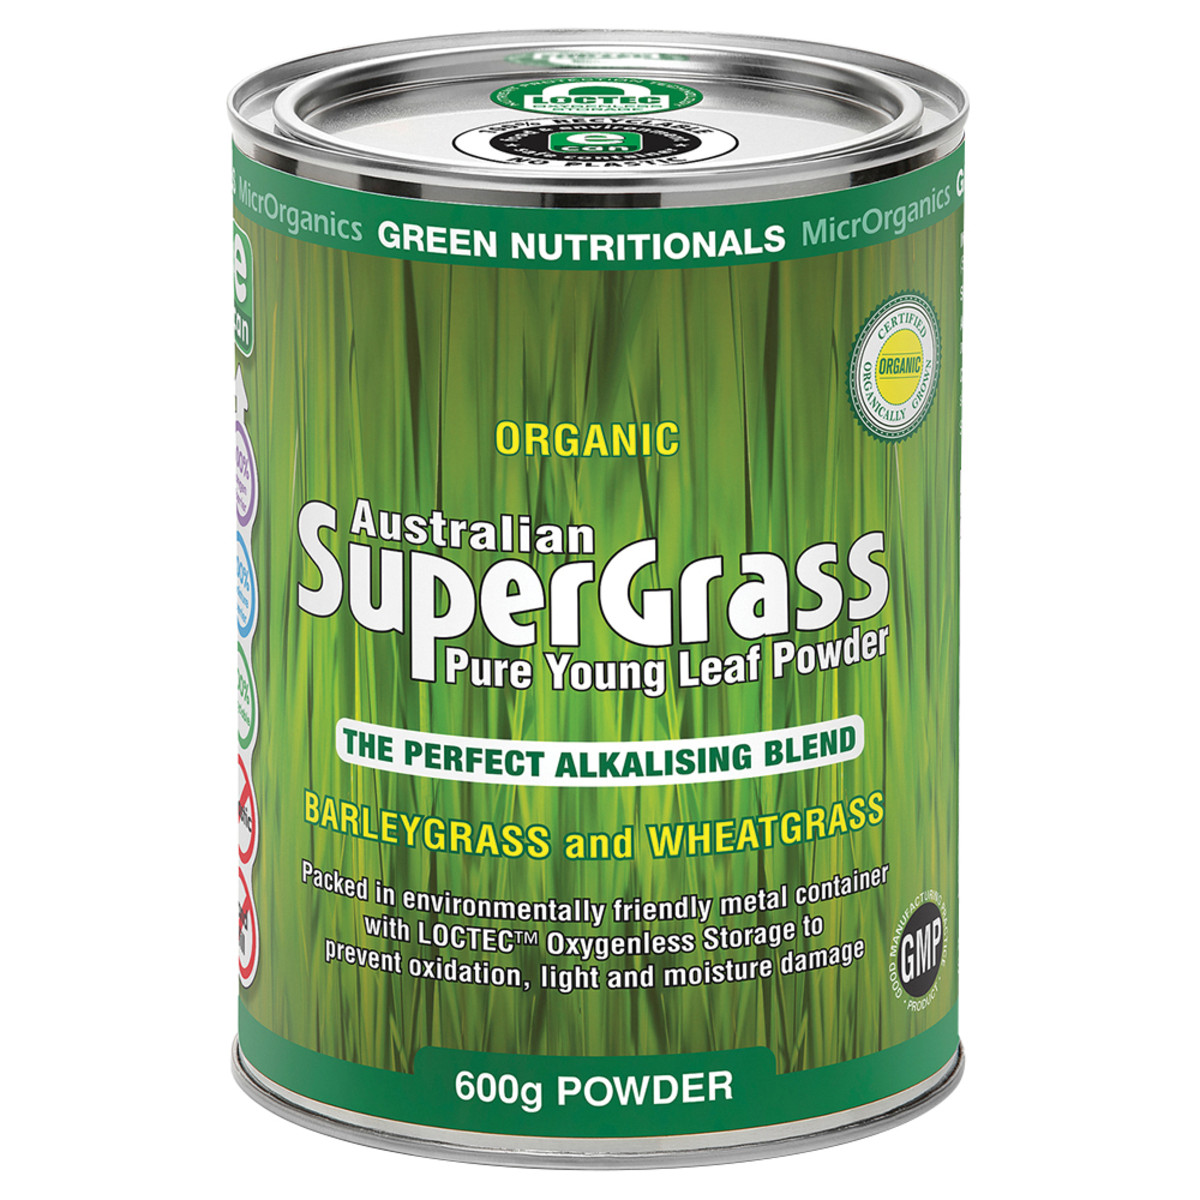 MICRORGANICS GREEN NUTRITIONALS ORGANIC AUS SUPERGRASS 600G